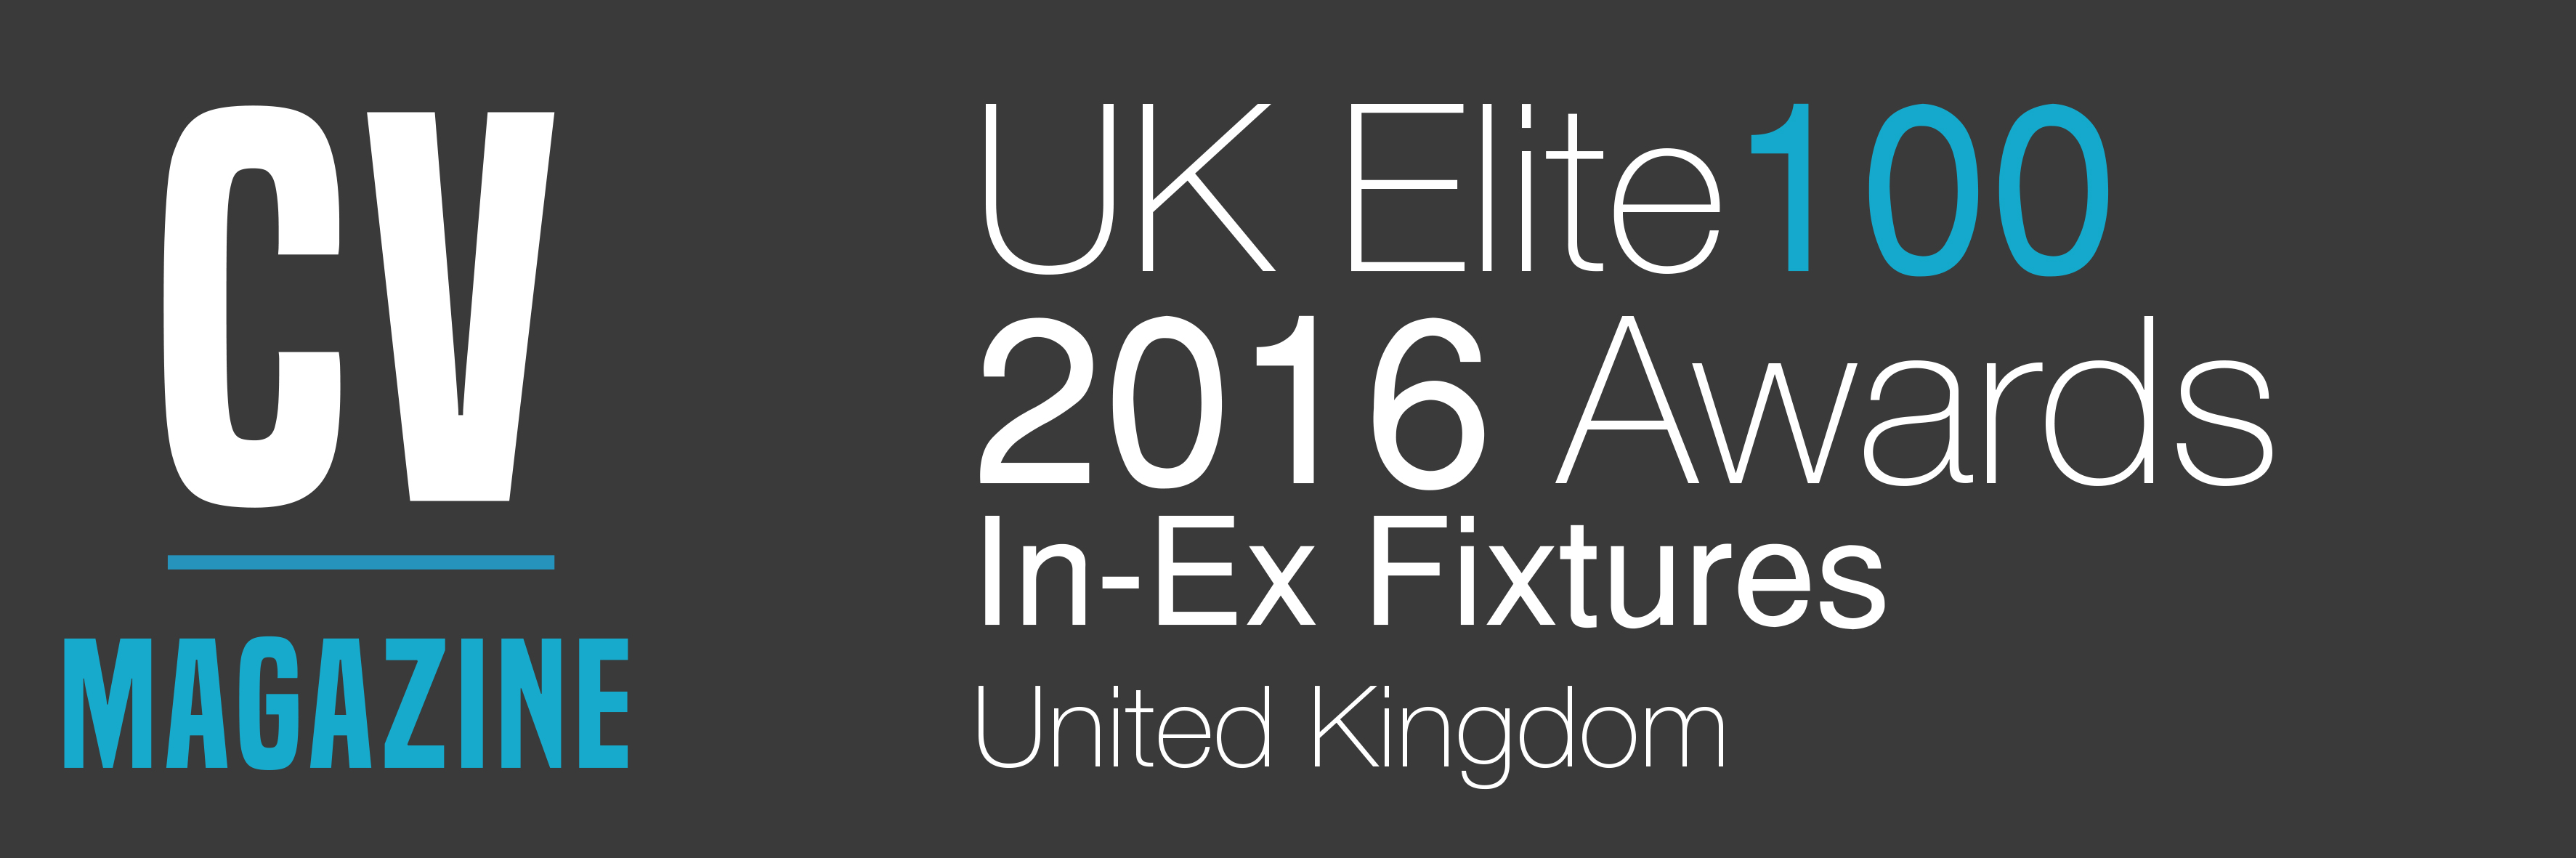 In-Ex Fixtures - UK Elite 100 Awards (1608AC93) Winners Logo